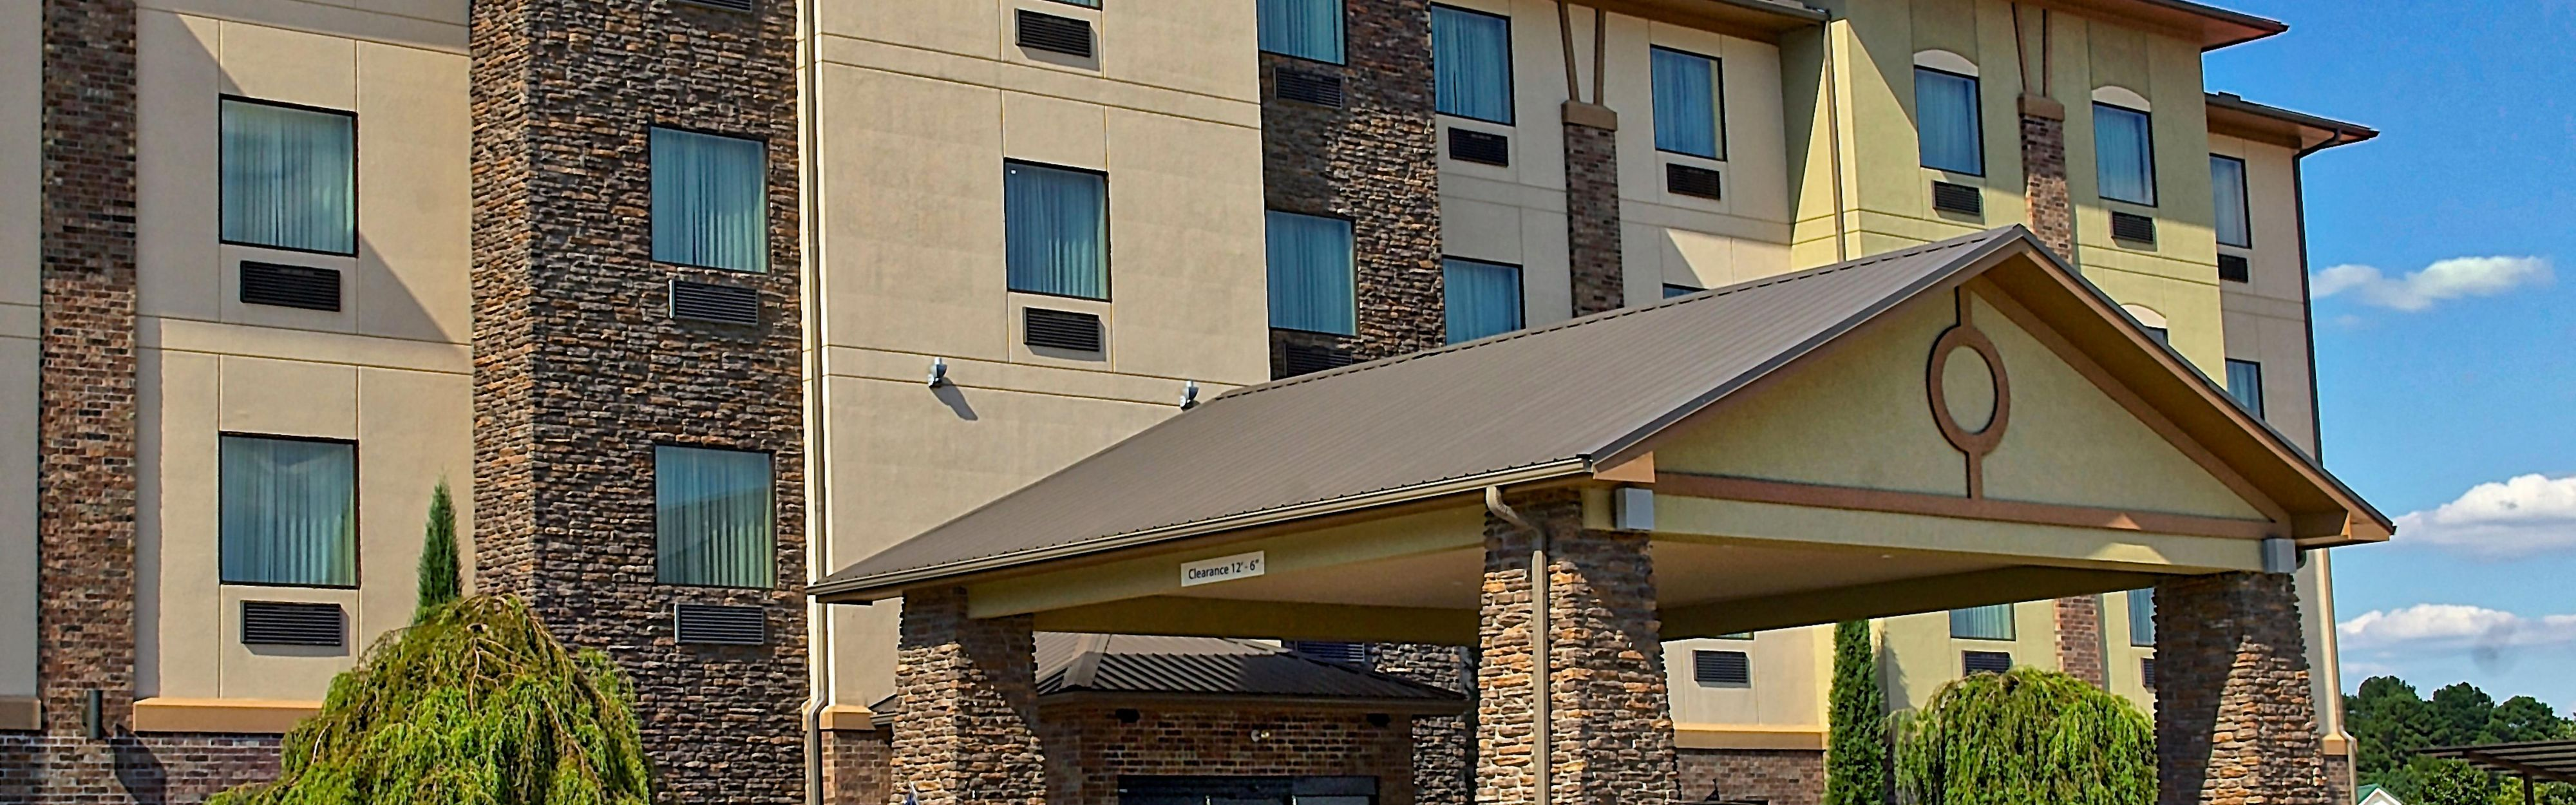 Holiday Inn Express & Suites Heber Springs image 0